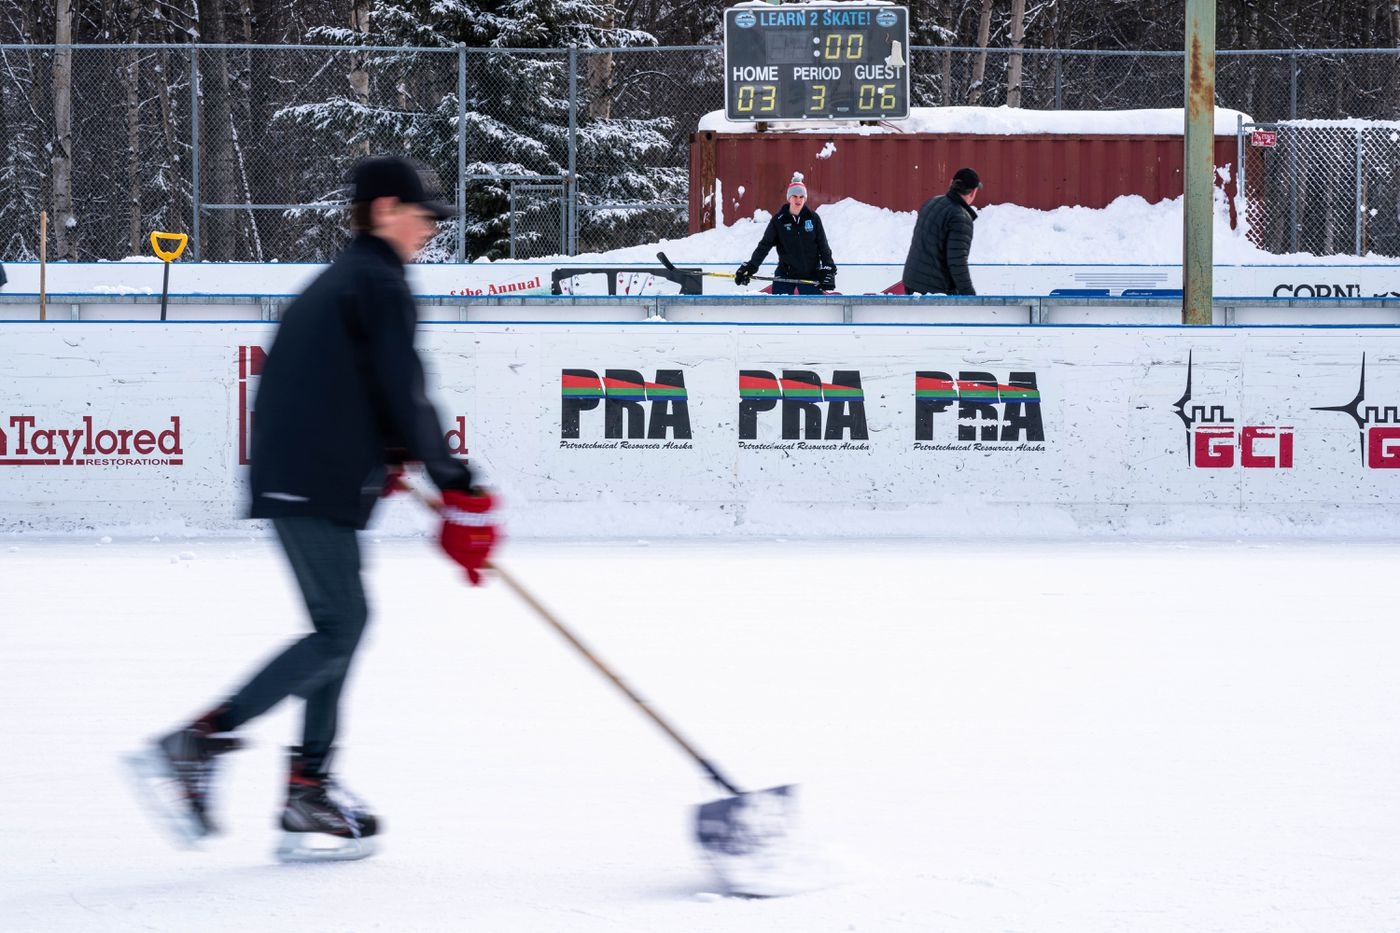 People practice hockey on Wednesday, March 18, 2020 at the Bonnie Cusack Memorial Rink in Anchorage. (Loren Holmes / ADN)